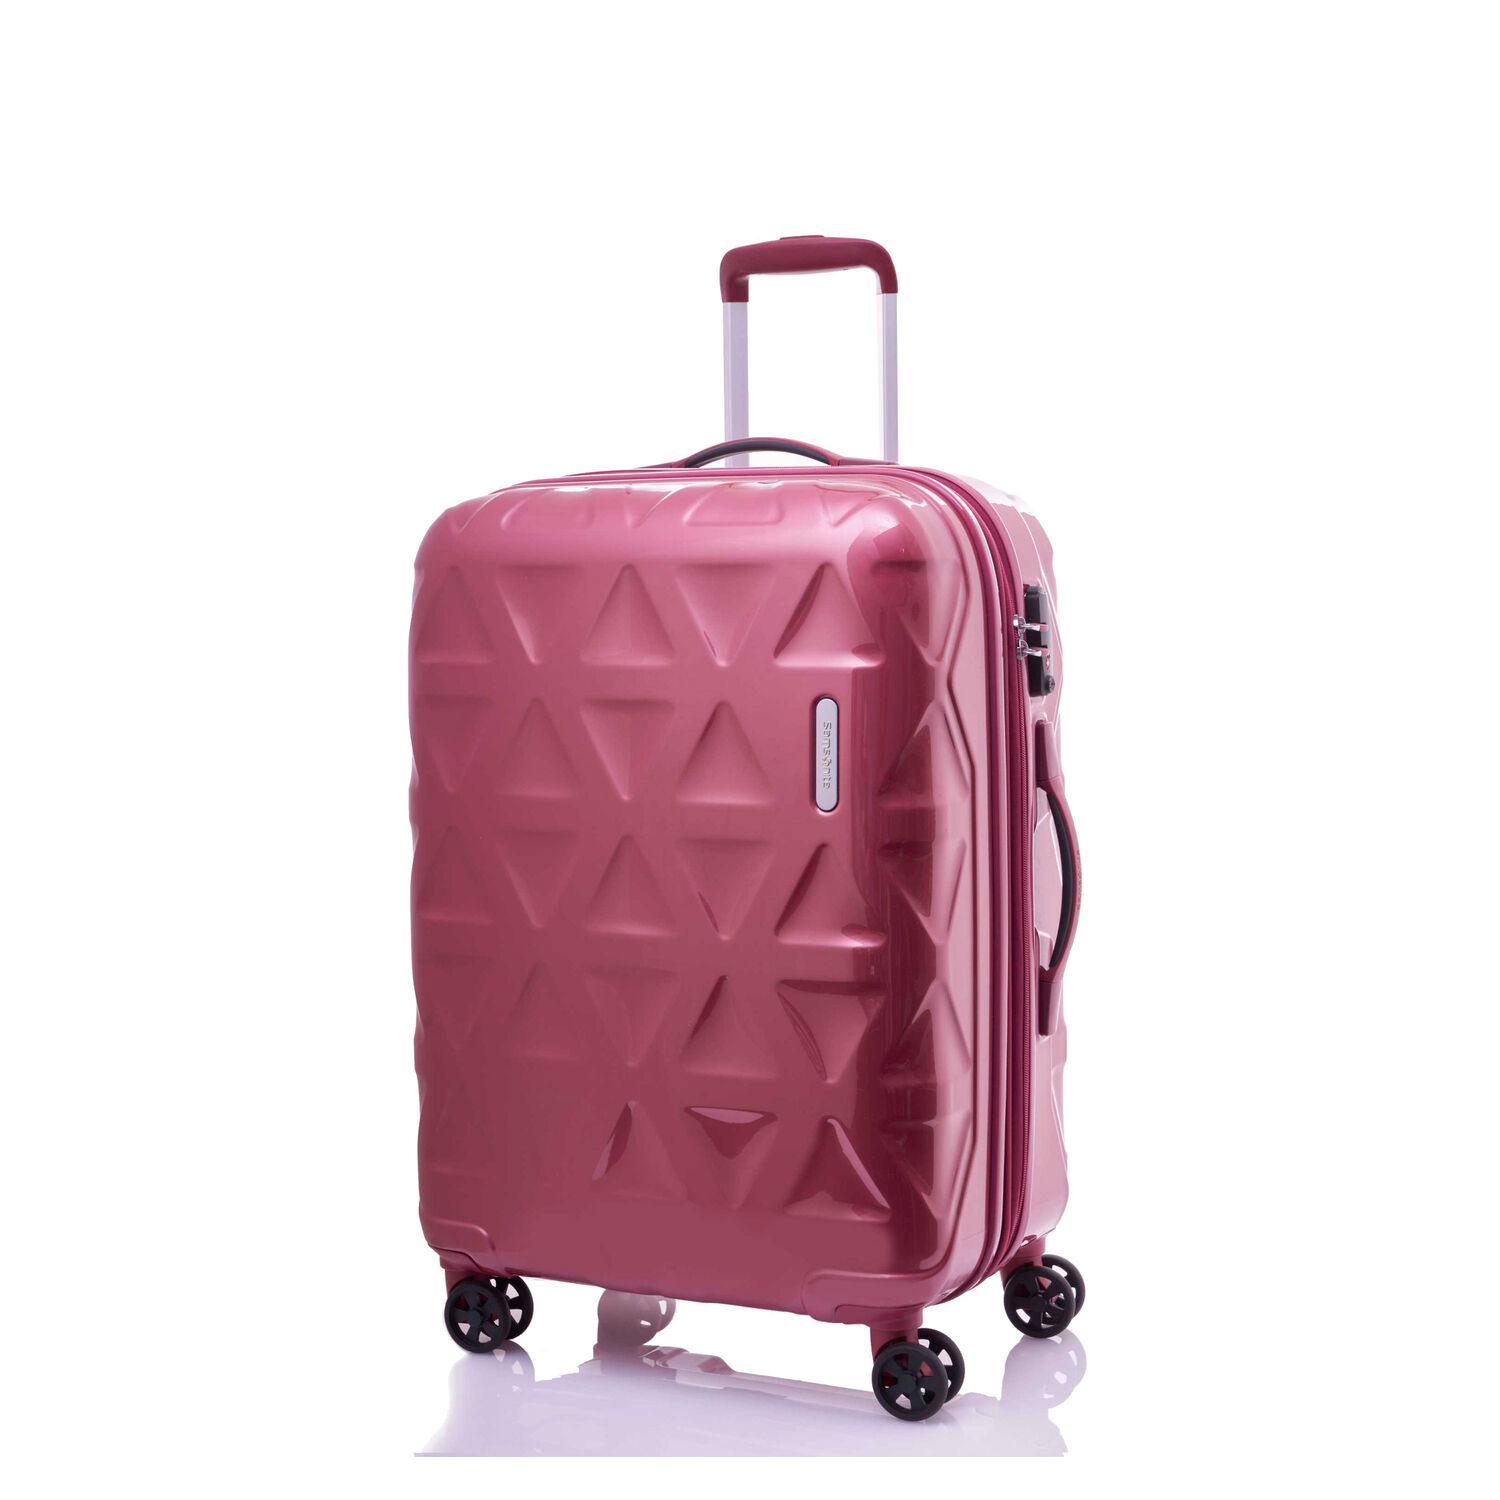 Samsonite Novus 25